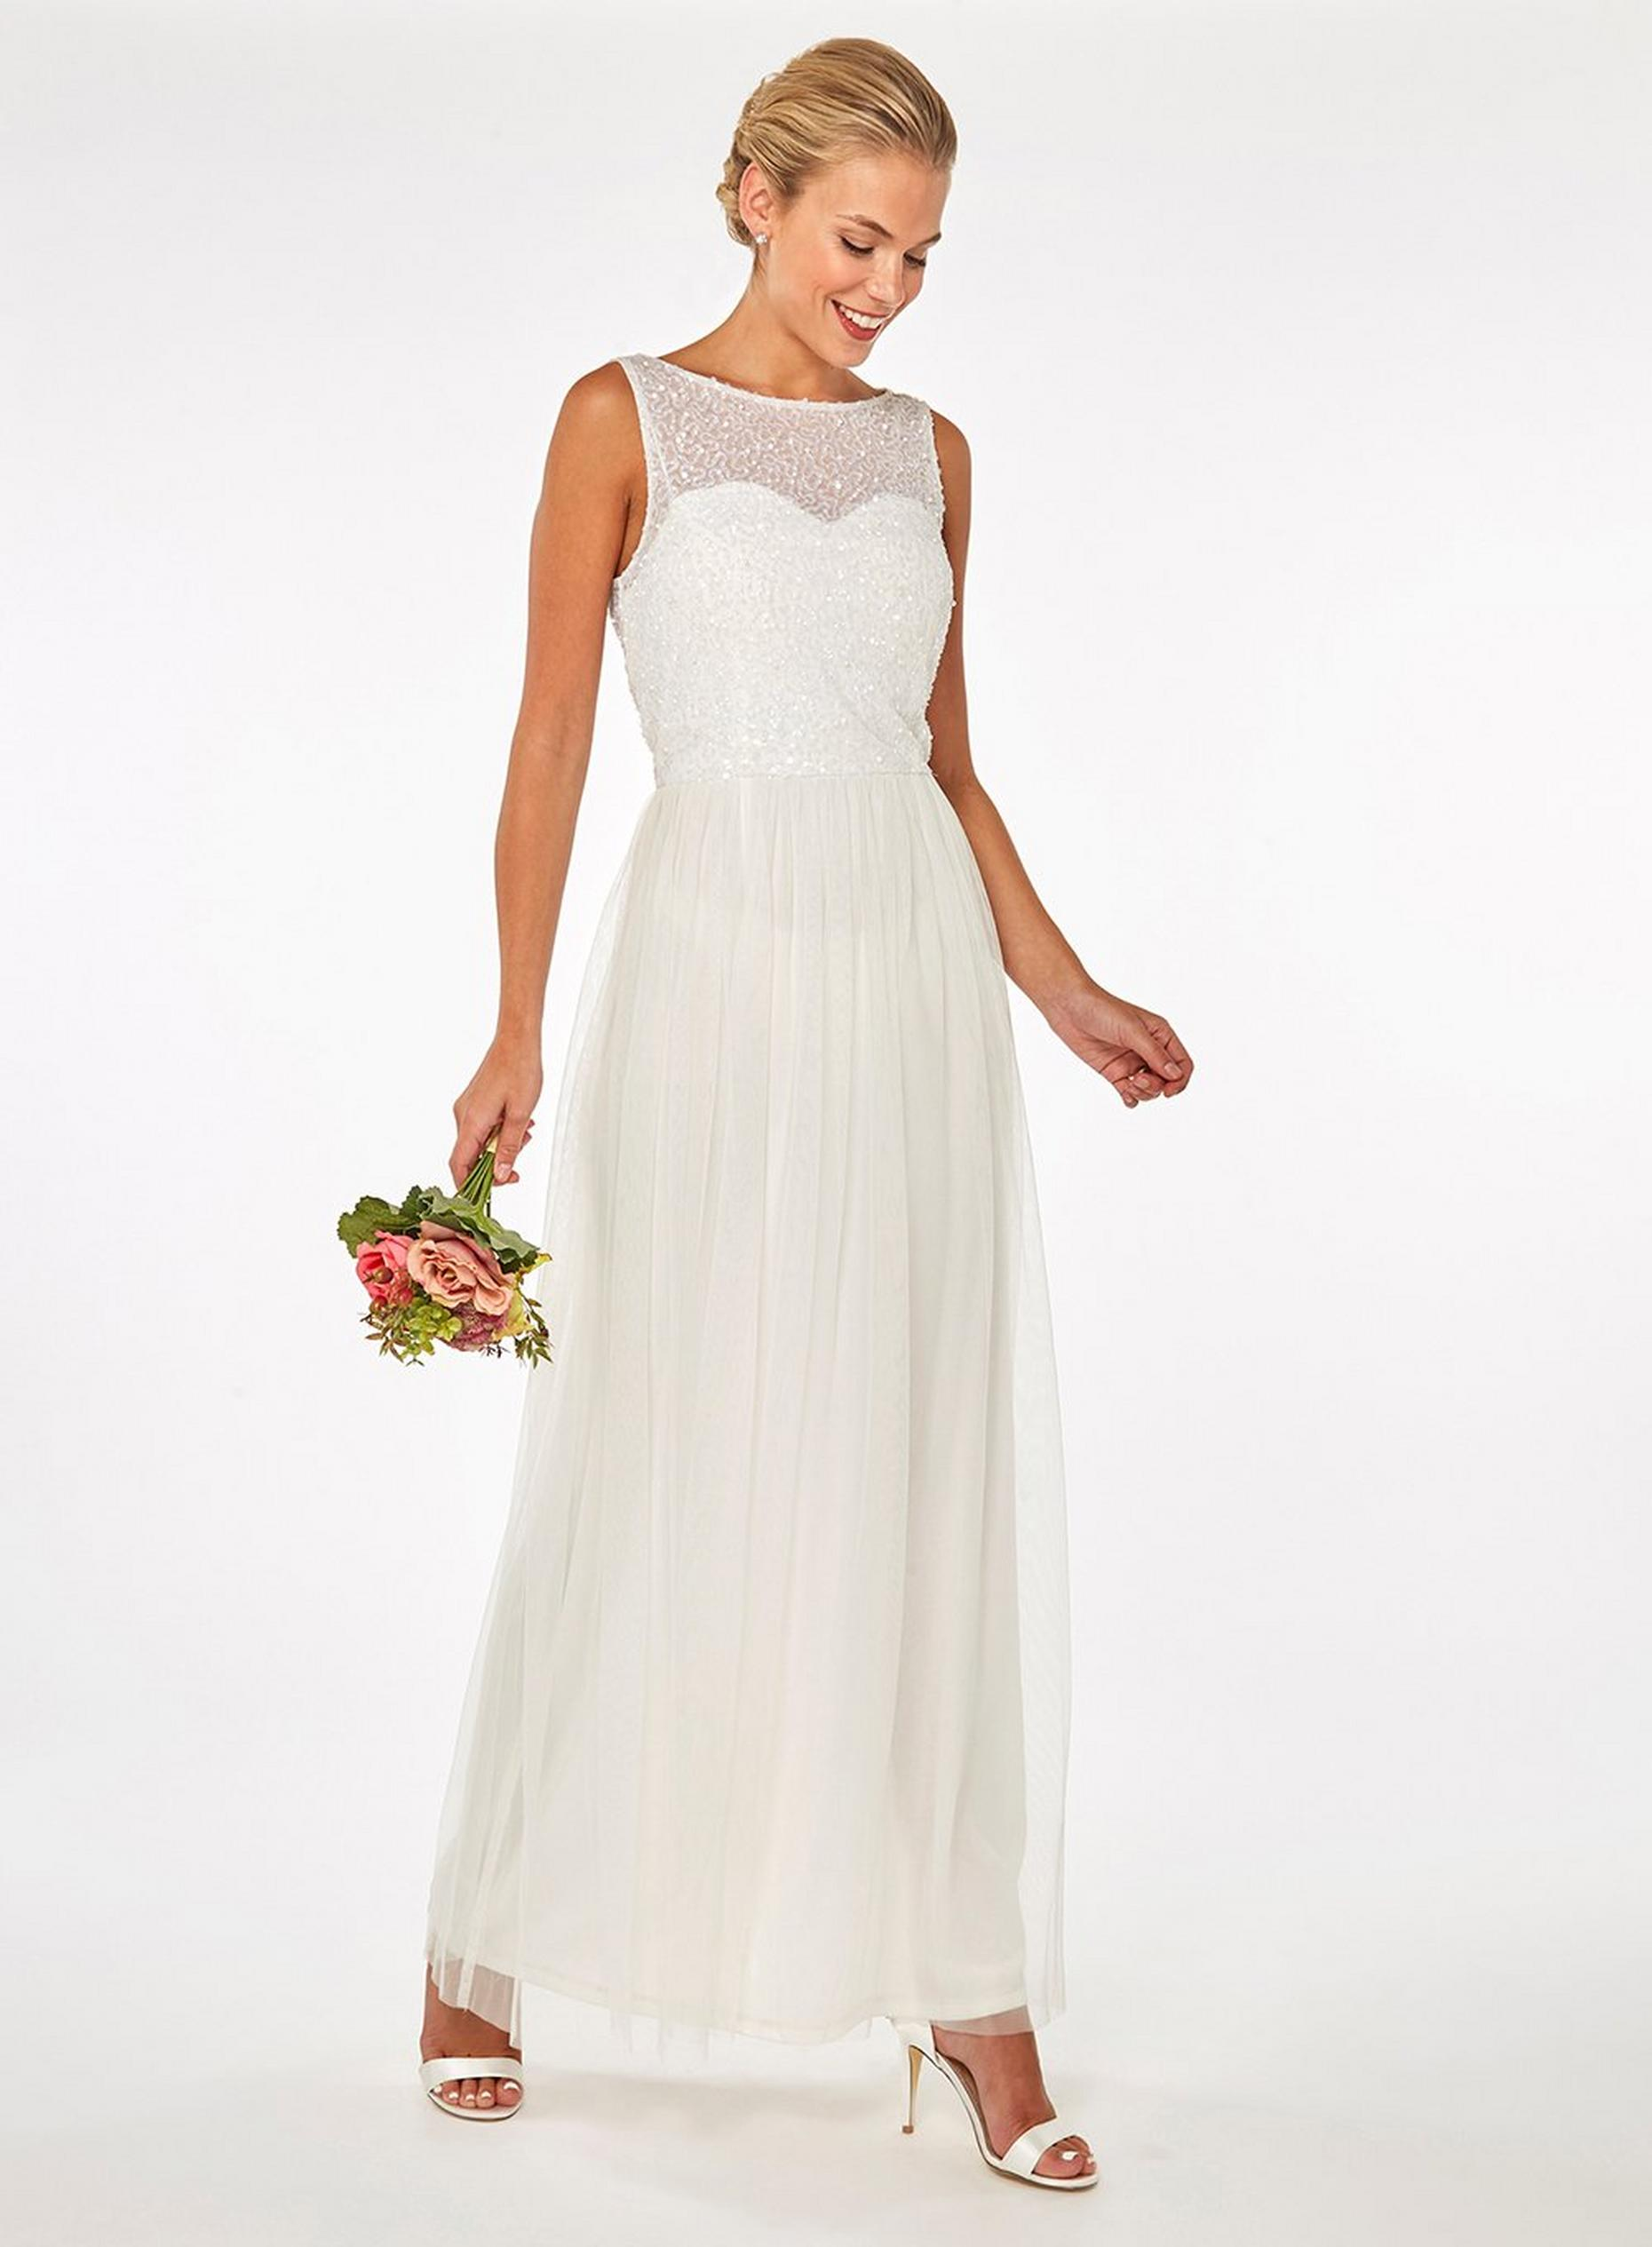 Bridal Amaya Maxi Dress